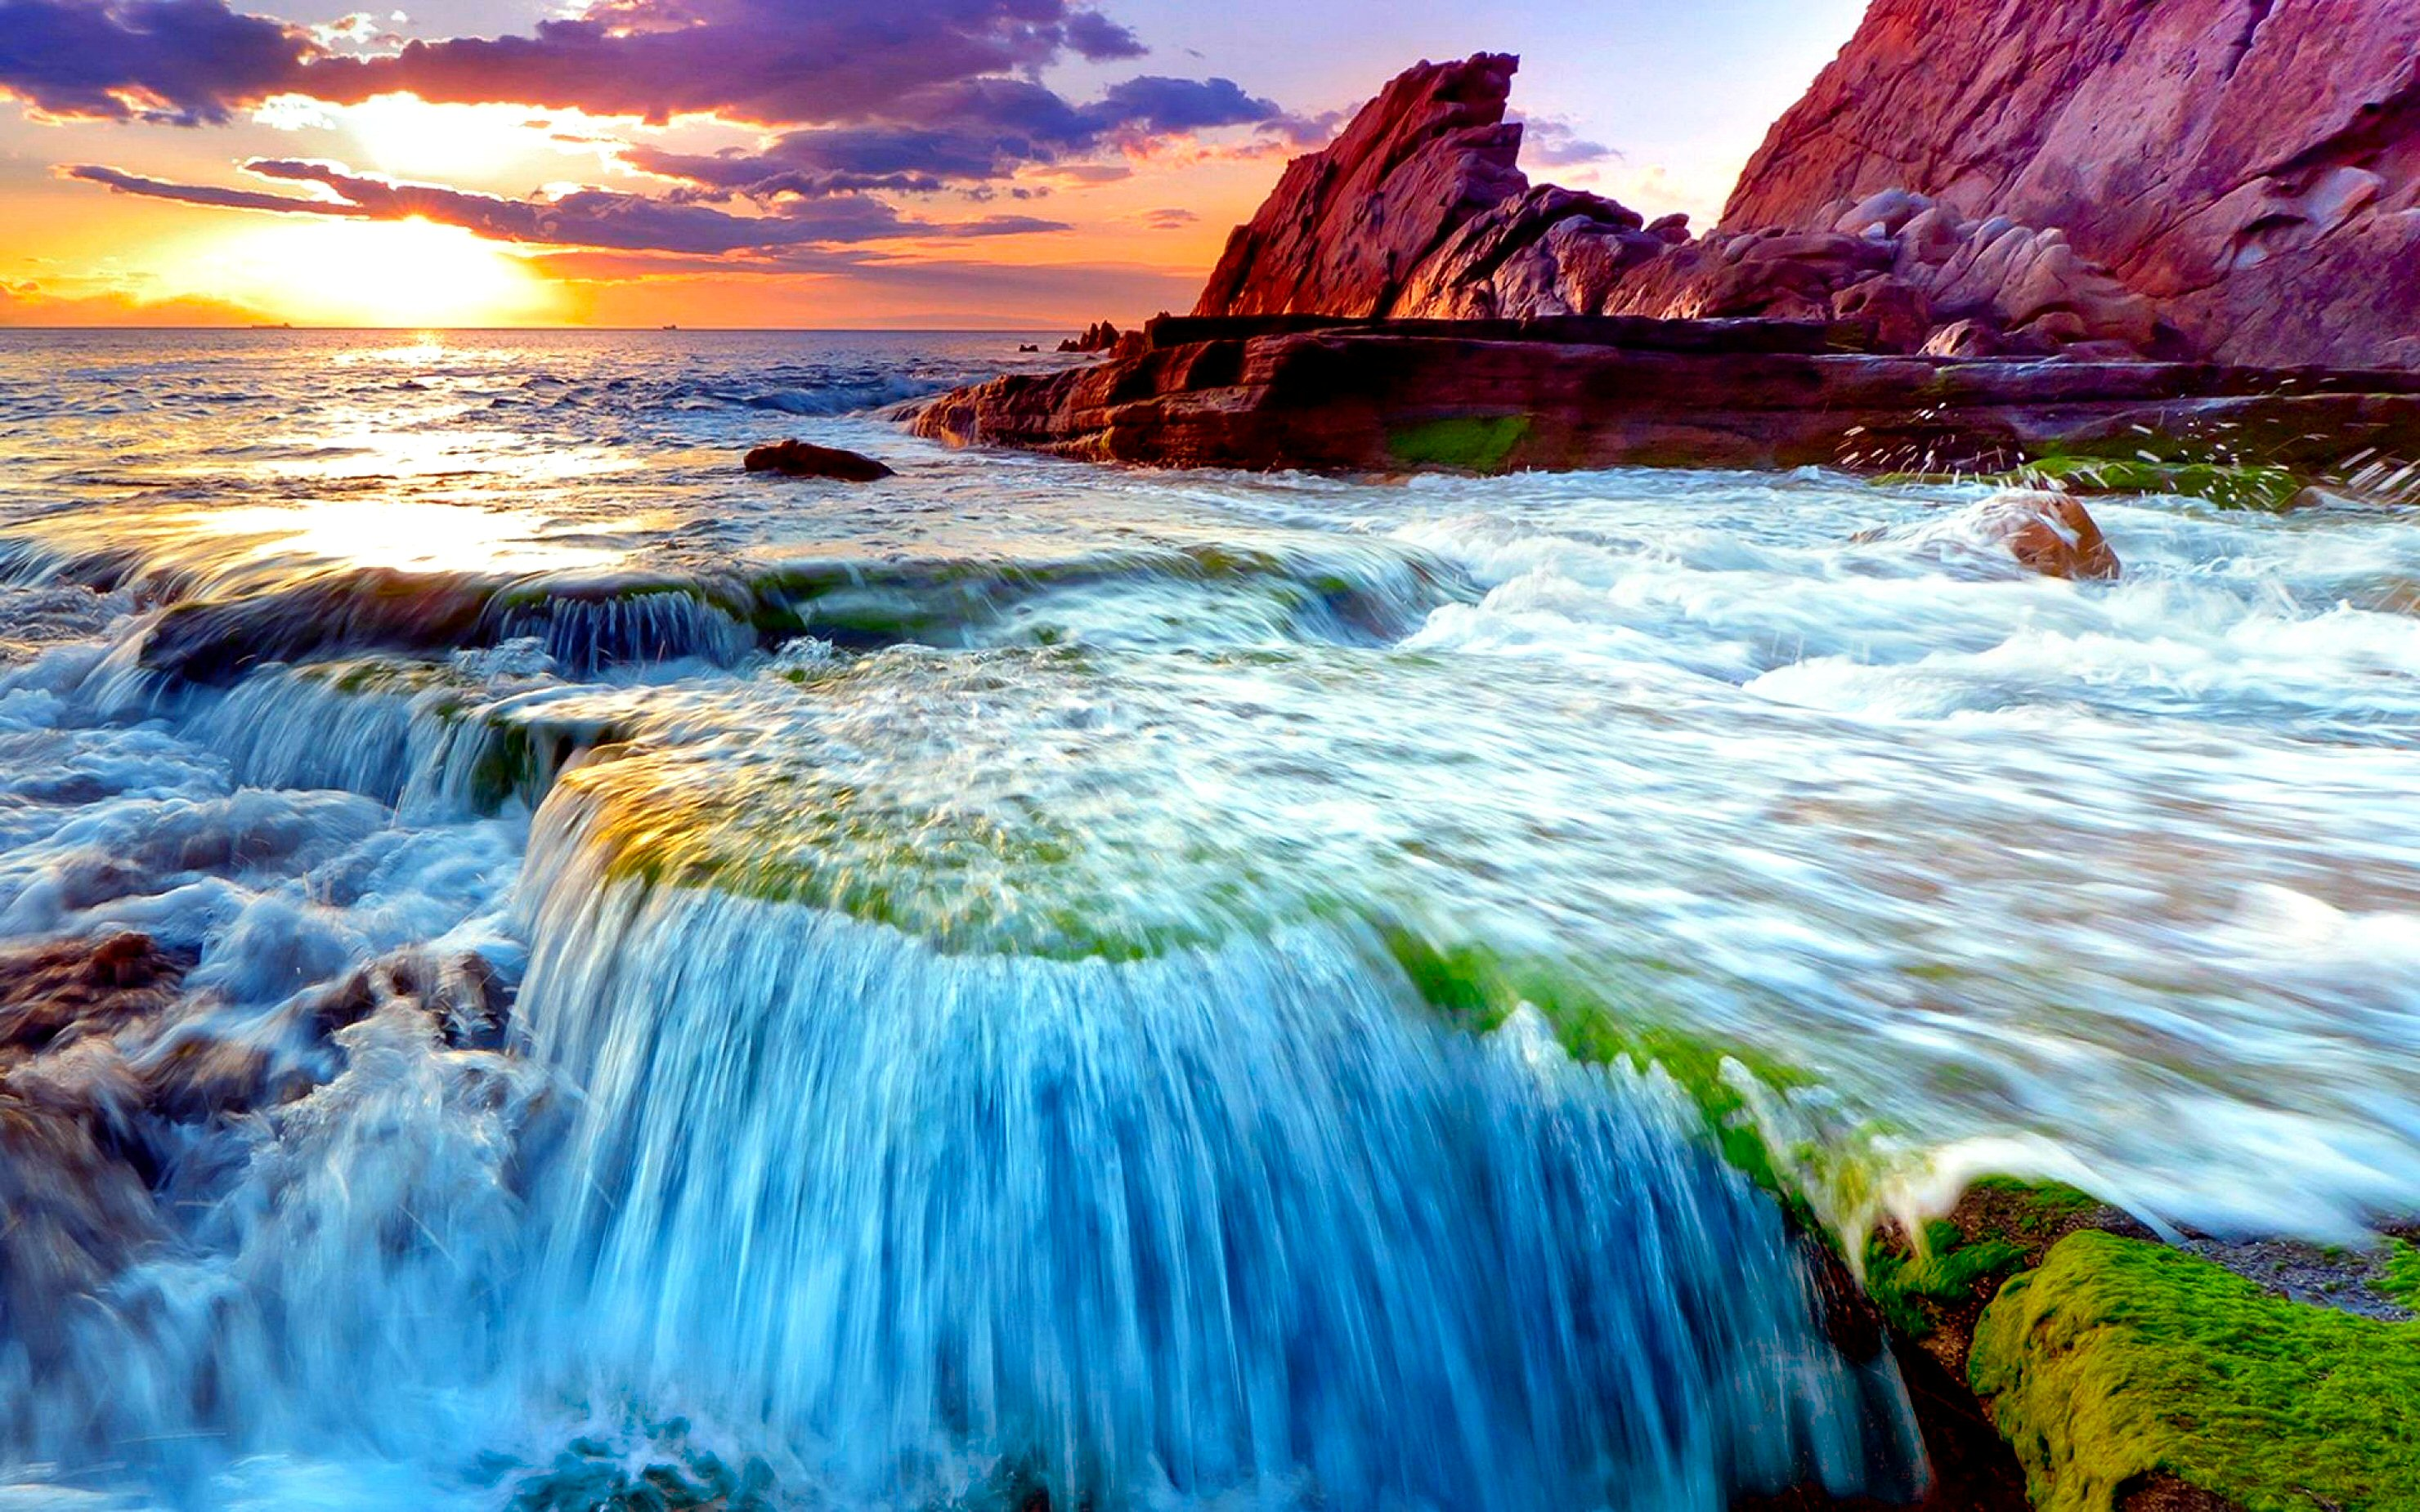 9 spectacular hd waterfall wallpapers to download